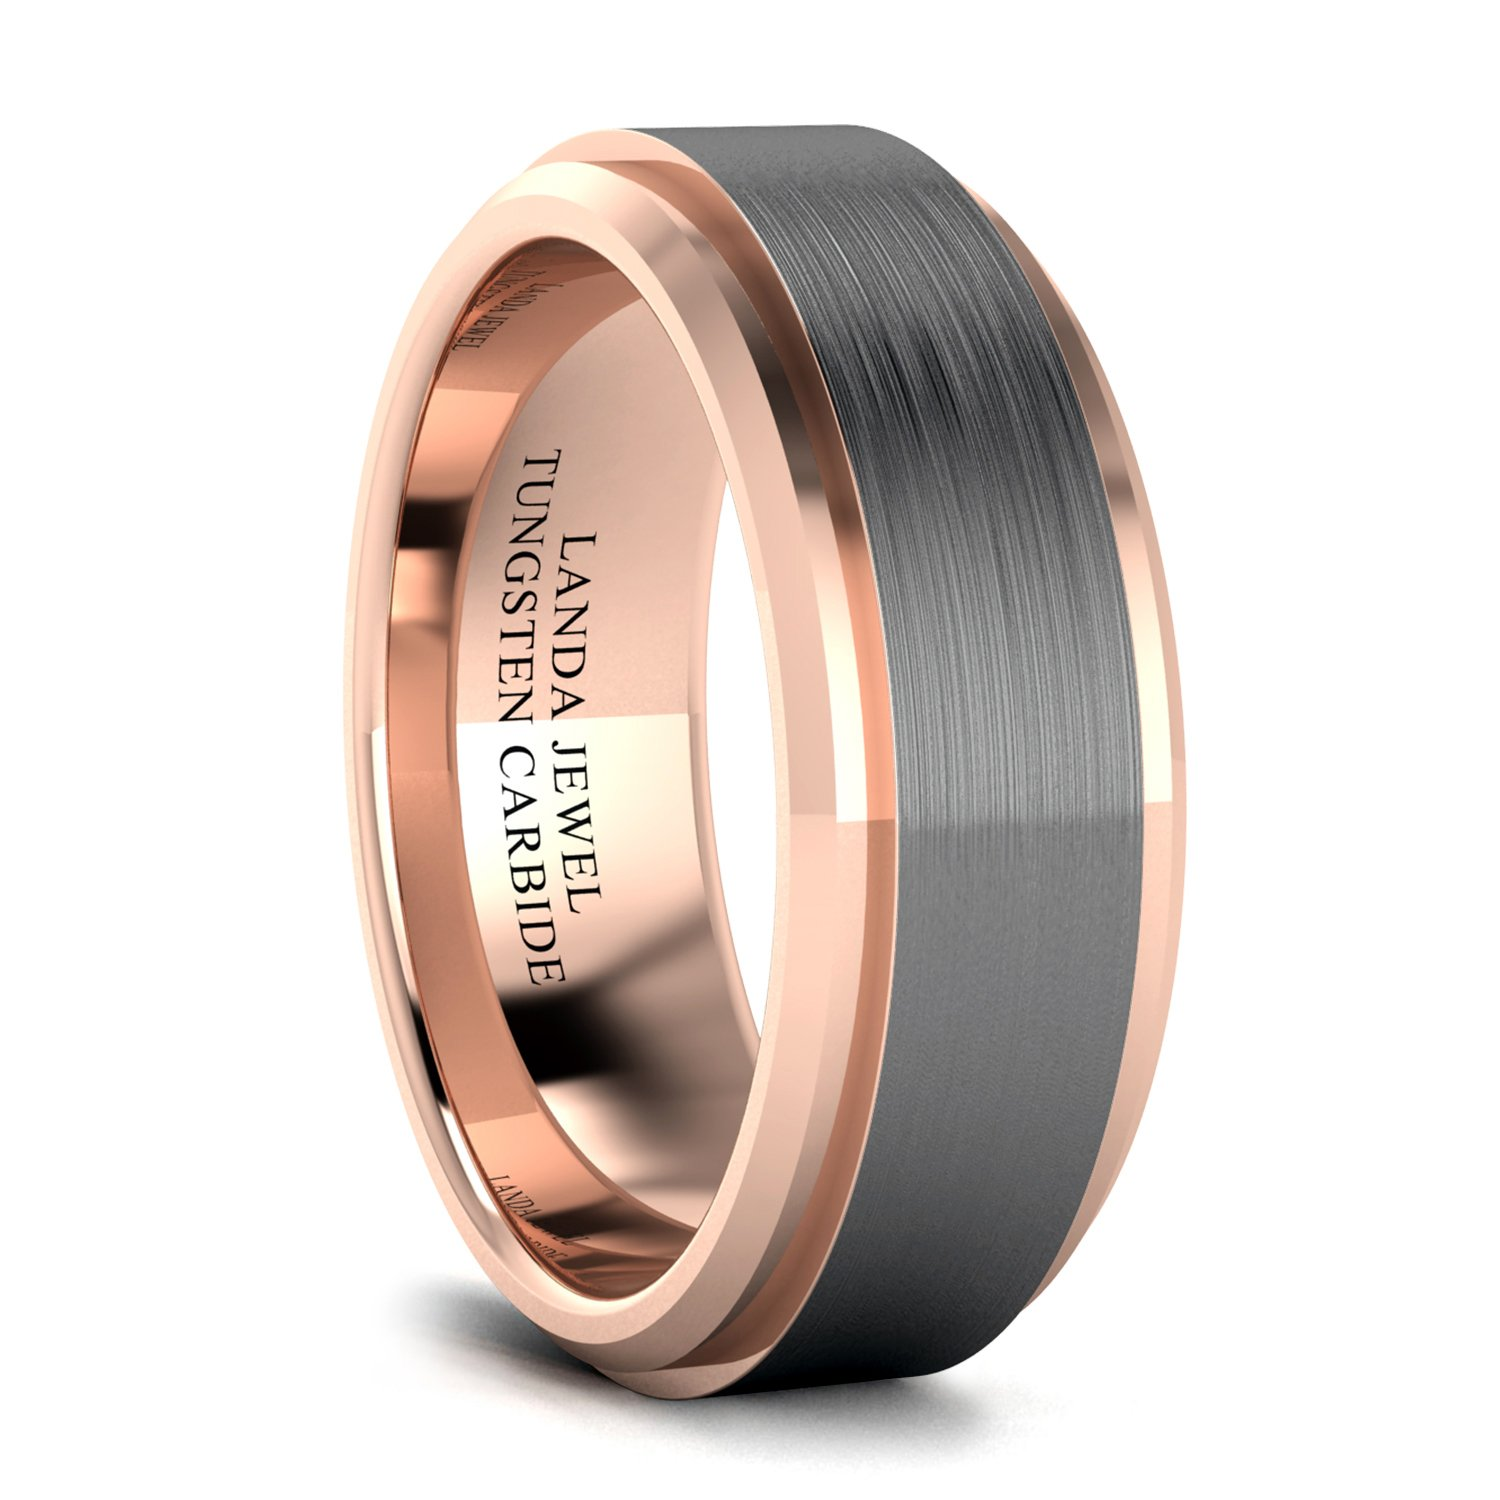 Tungsten Carbide 8mm Wedding Band for Men Beveled Edges Highly Polished and Center Brushed Comfort Fit LANDA JEWEL TS-CH3-WW-8M